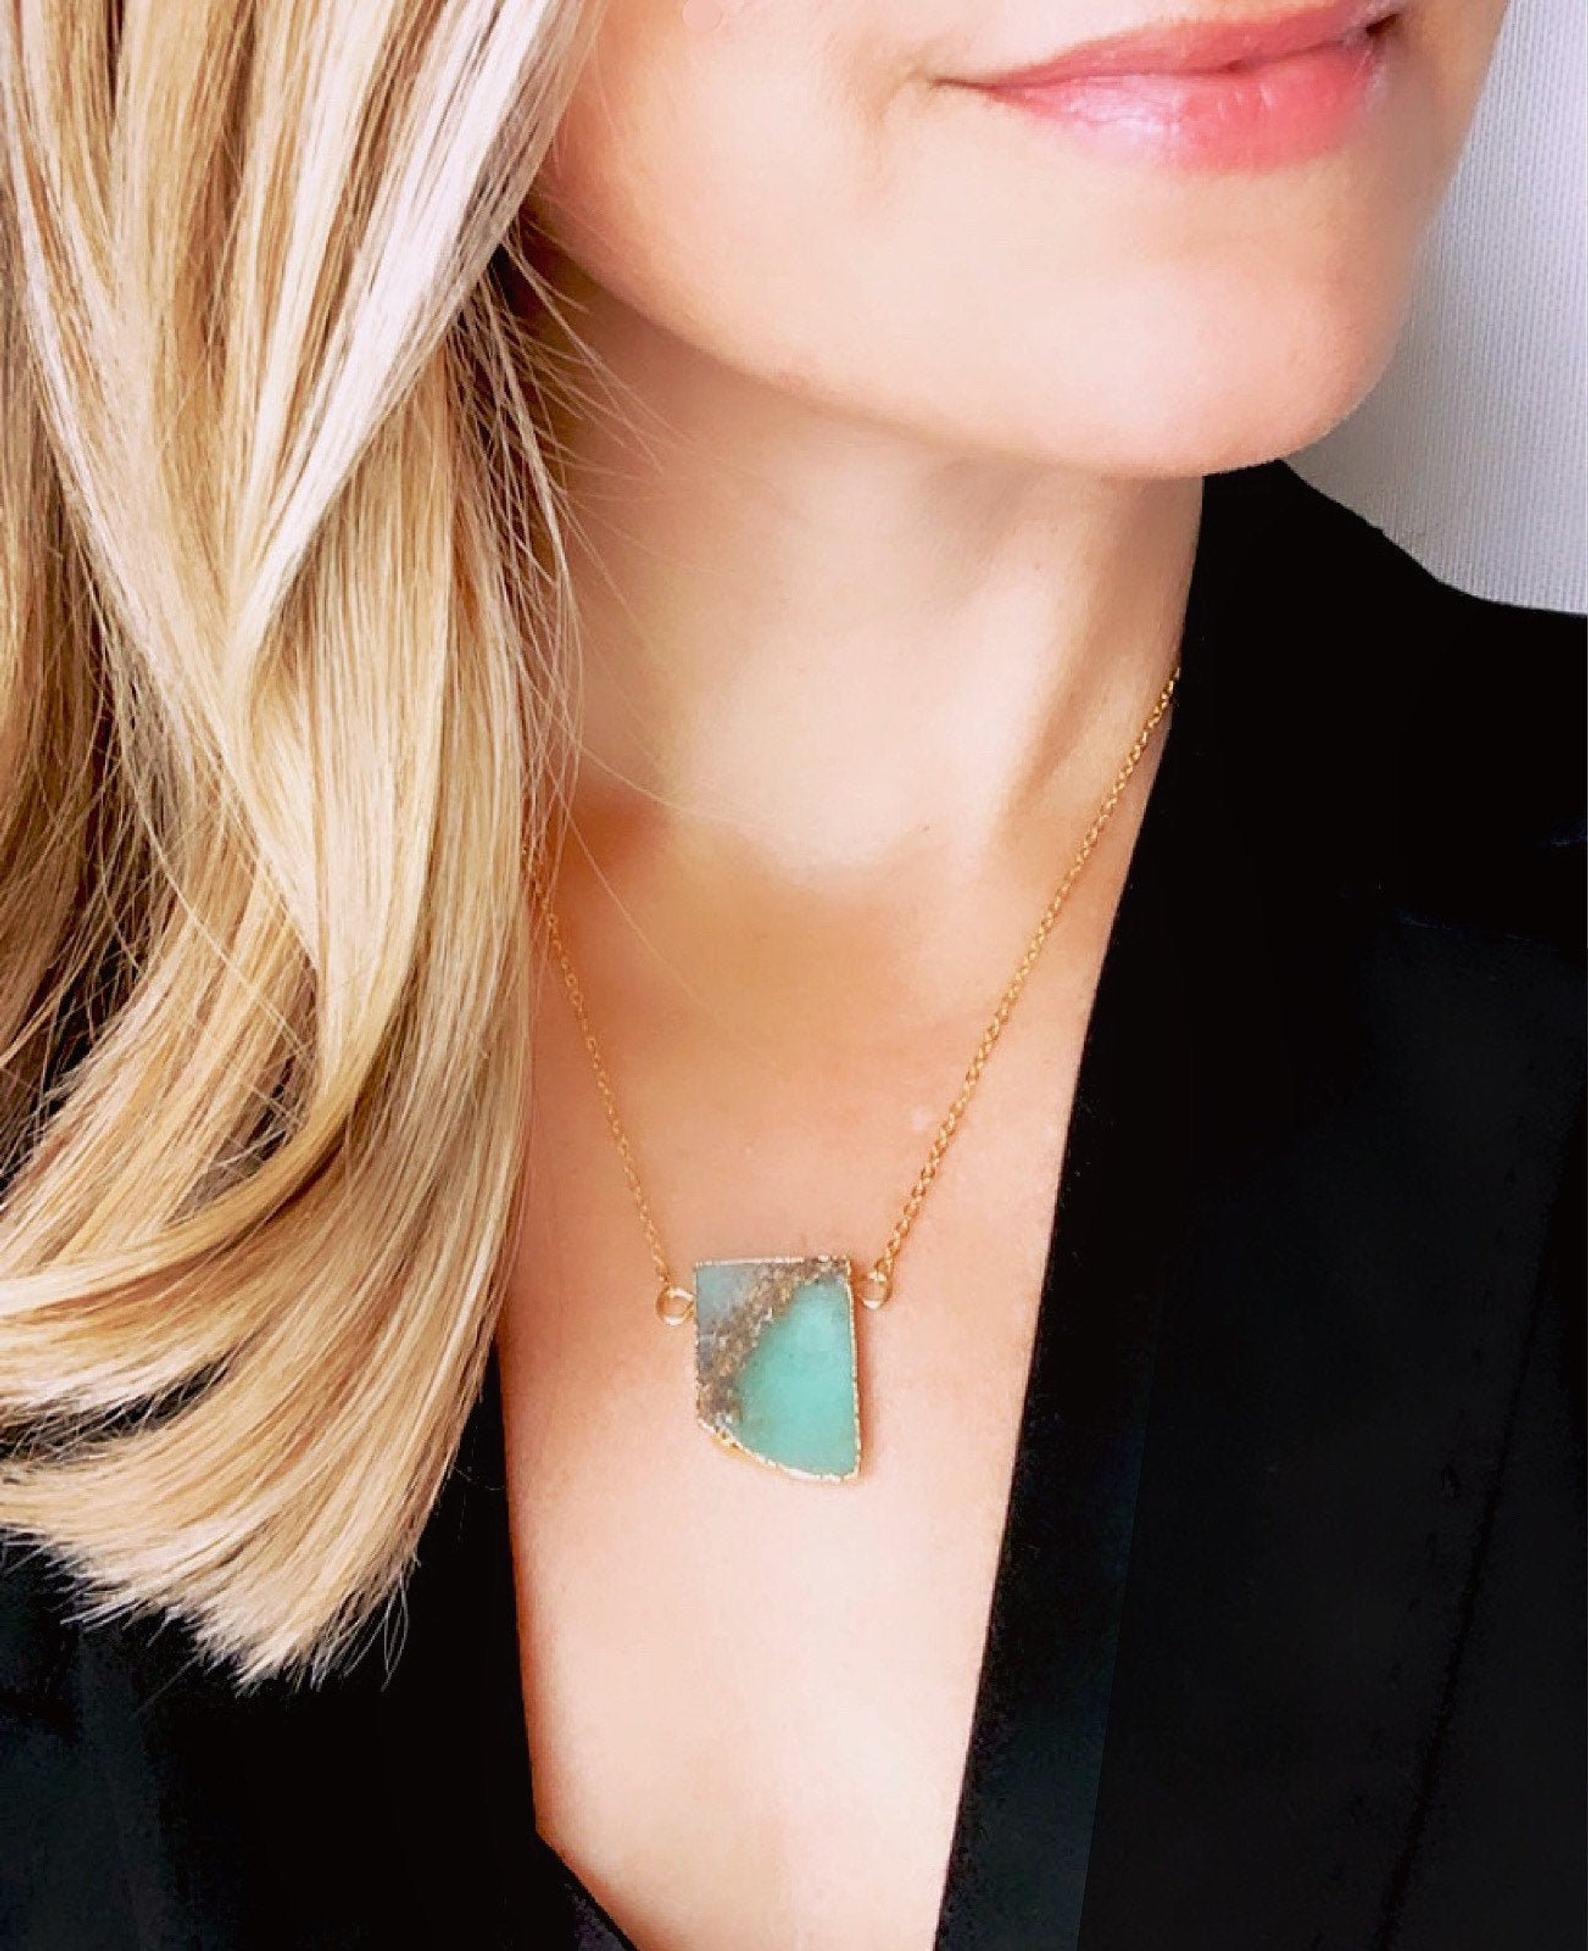 Raw Chrysoprase Gemstone Necklace